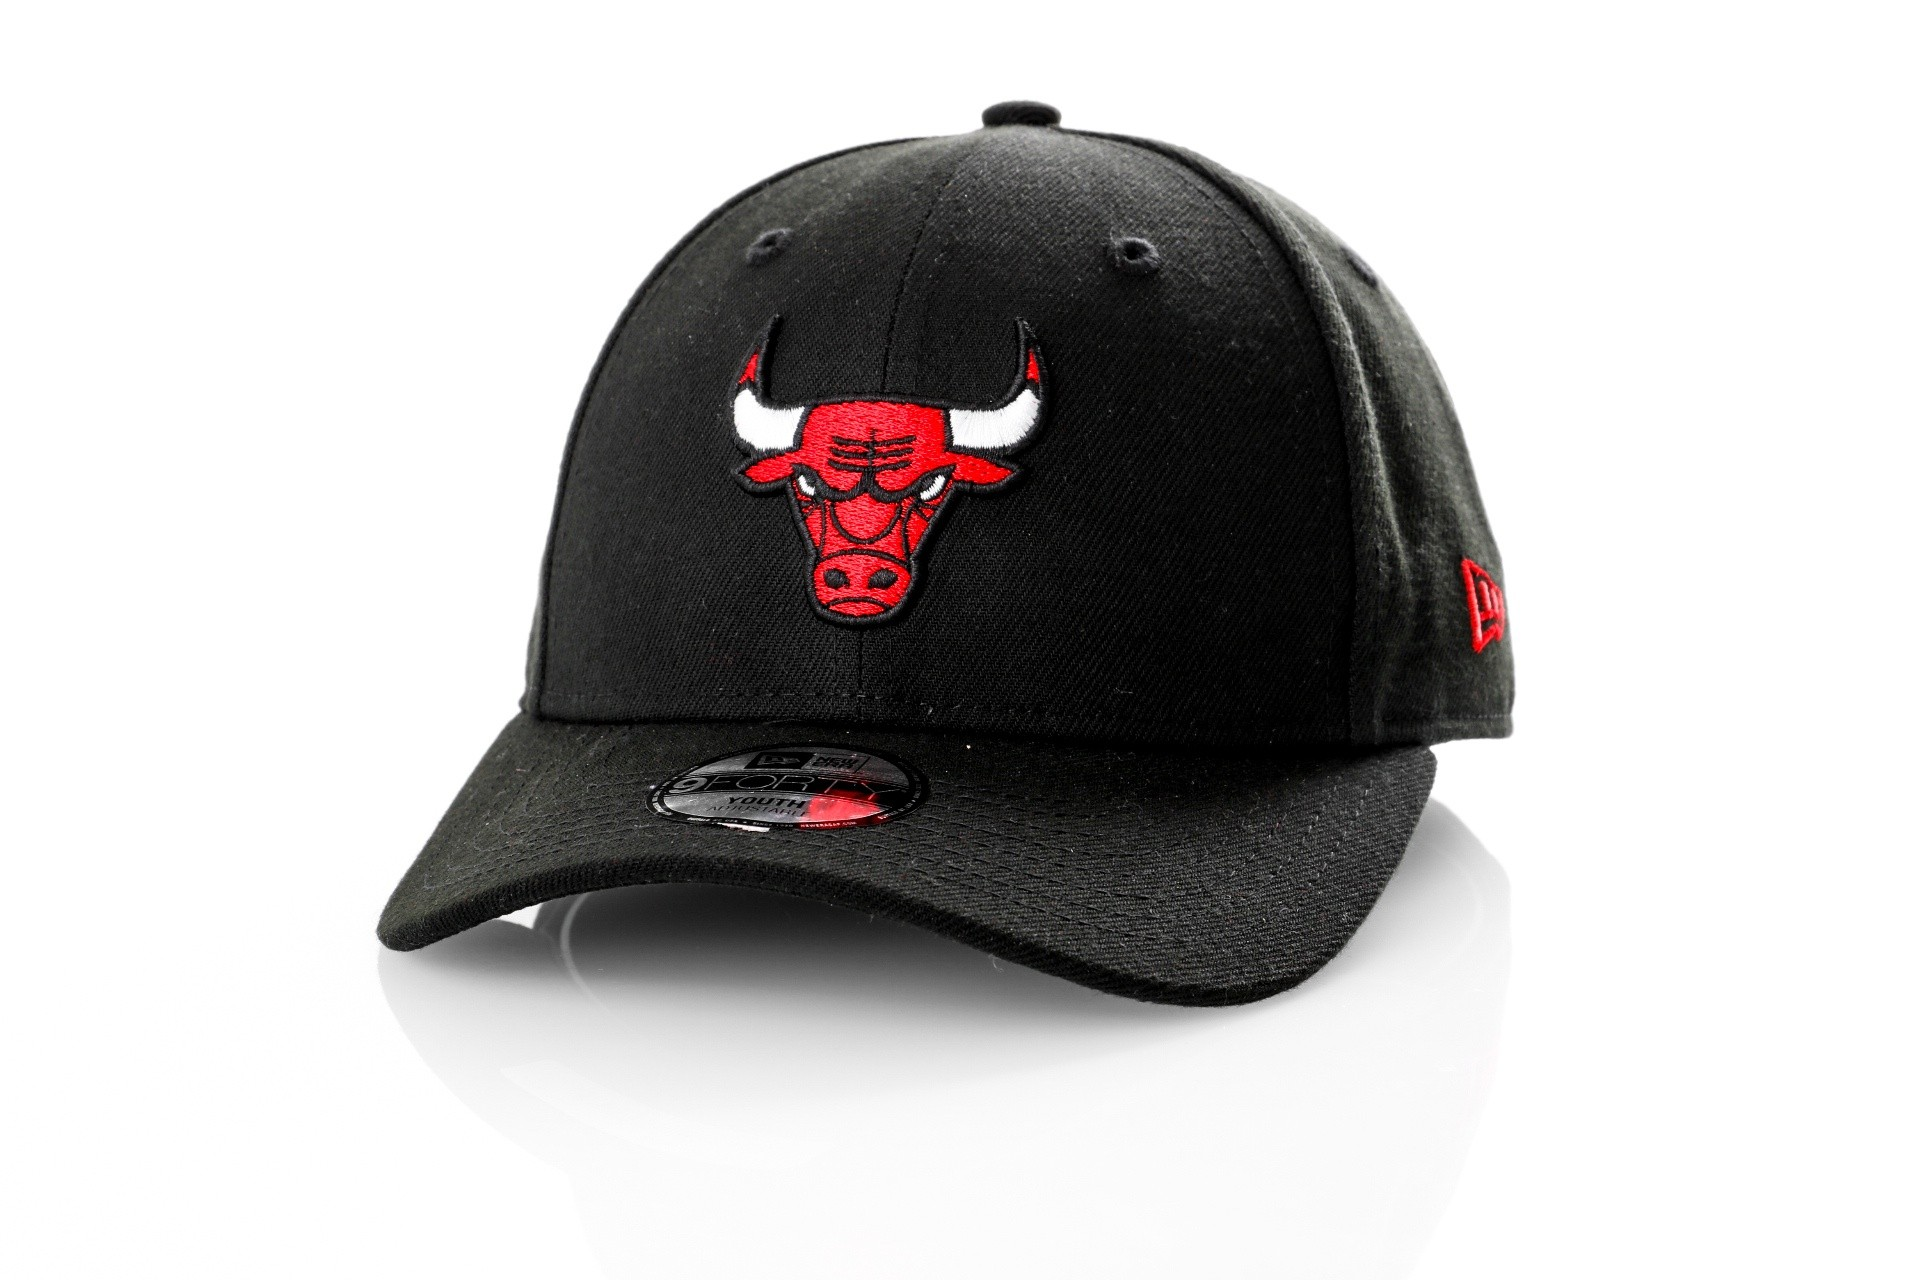 b0459808565 Boys Nba The League Chicago Bulls Otc 11546032